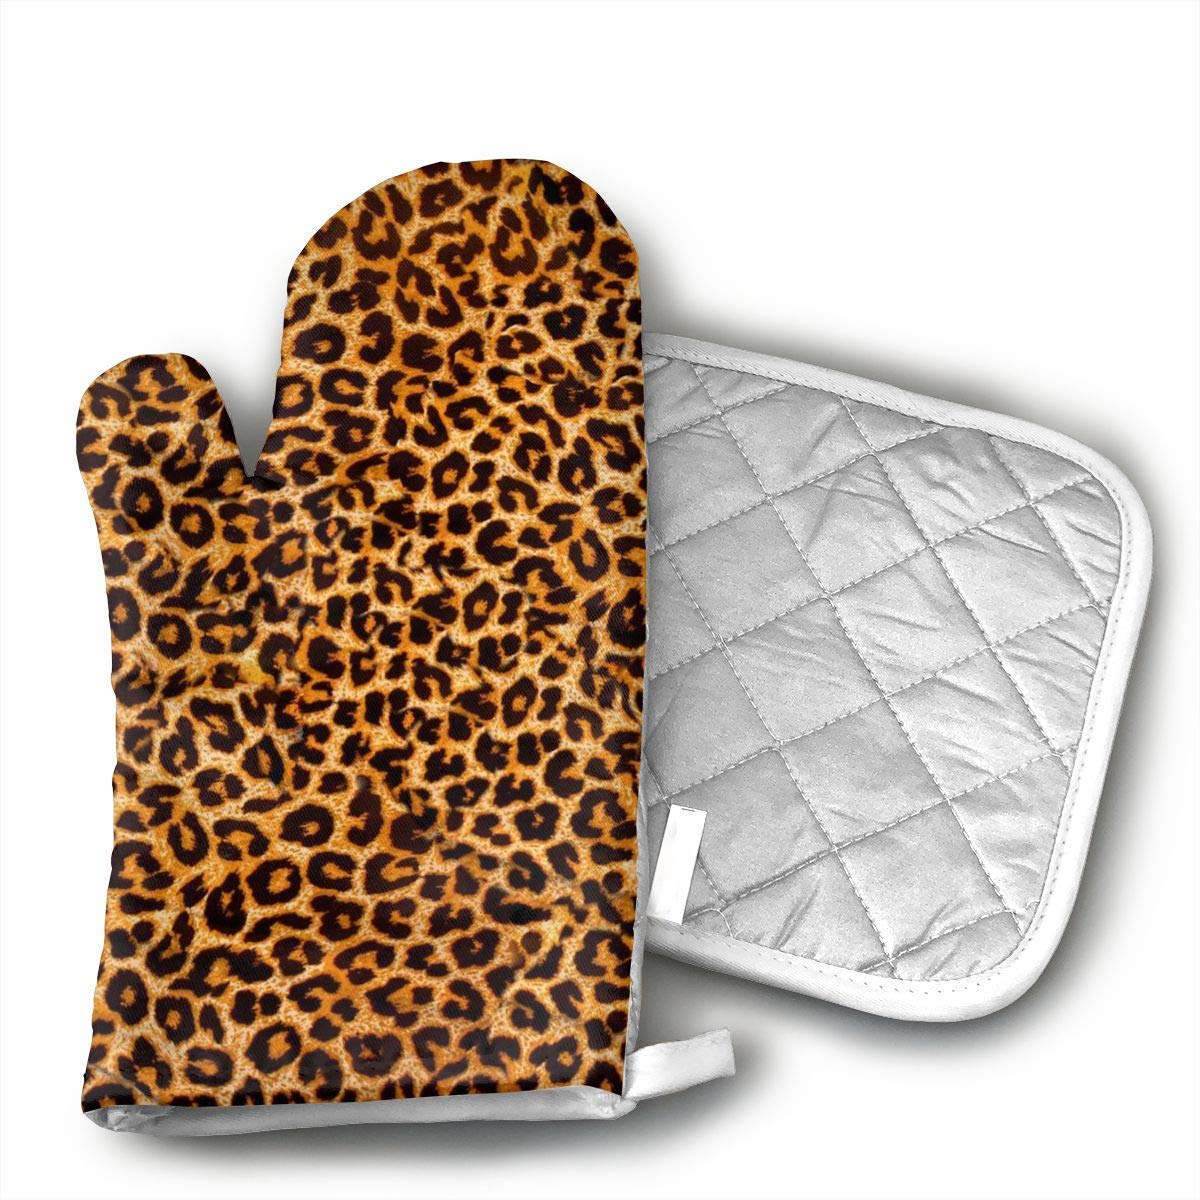 Leopard Print Oven Mitts and Pot Holders Set with Polyester Cotton Non-Slip Grip, Heat Resistant, Oven Gloves for BBQ Cooking Baking, Grilling